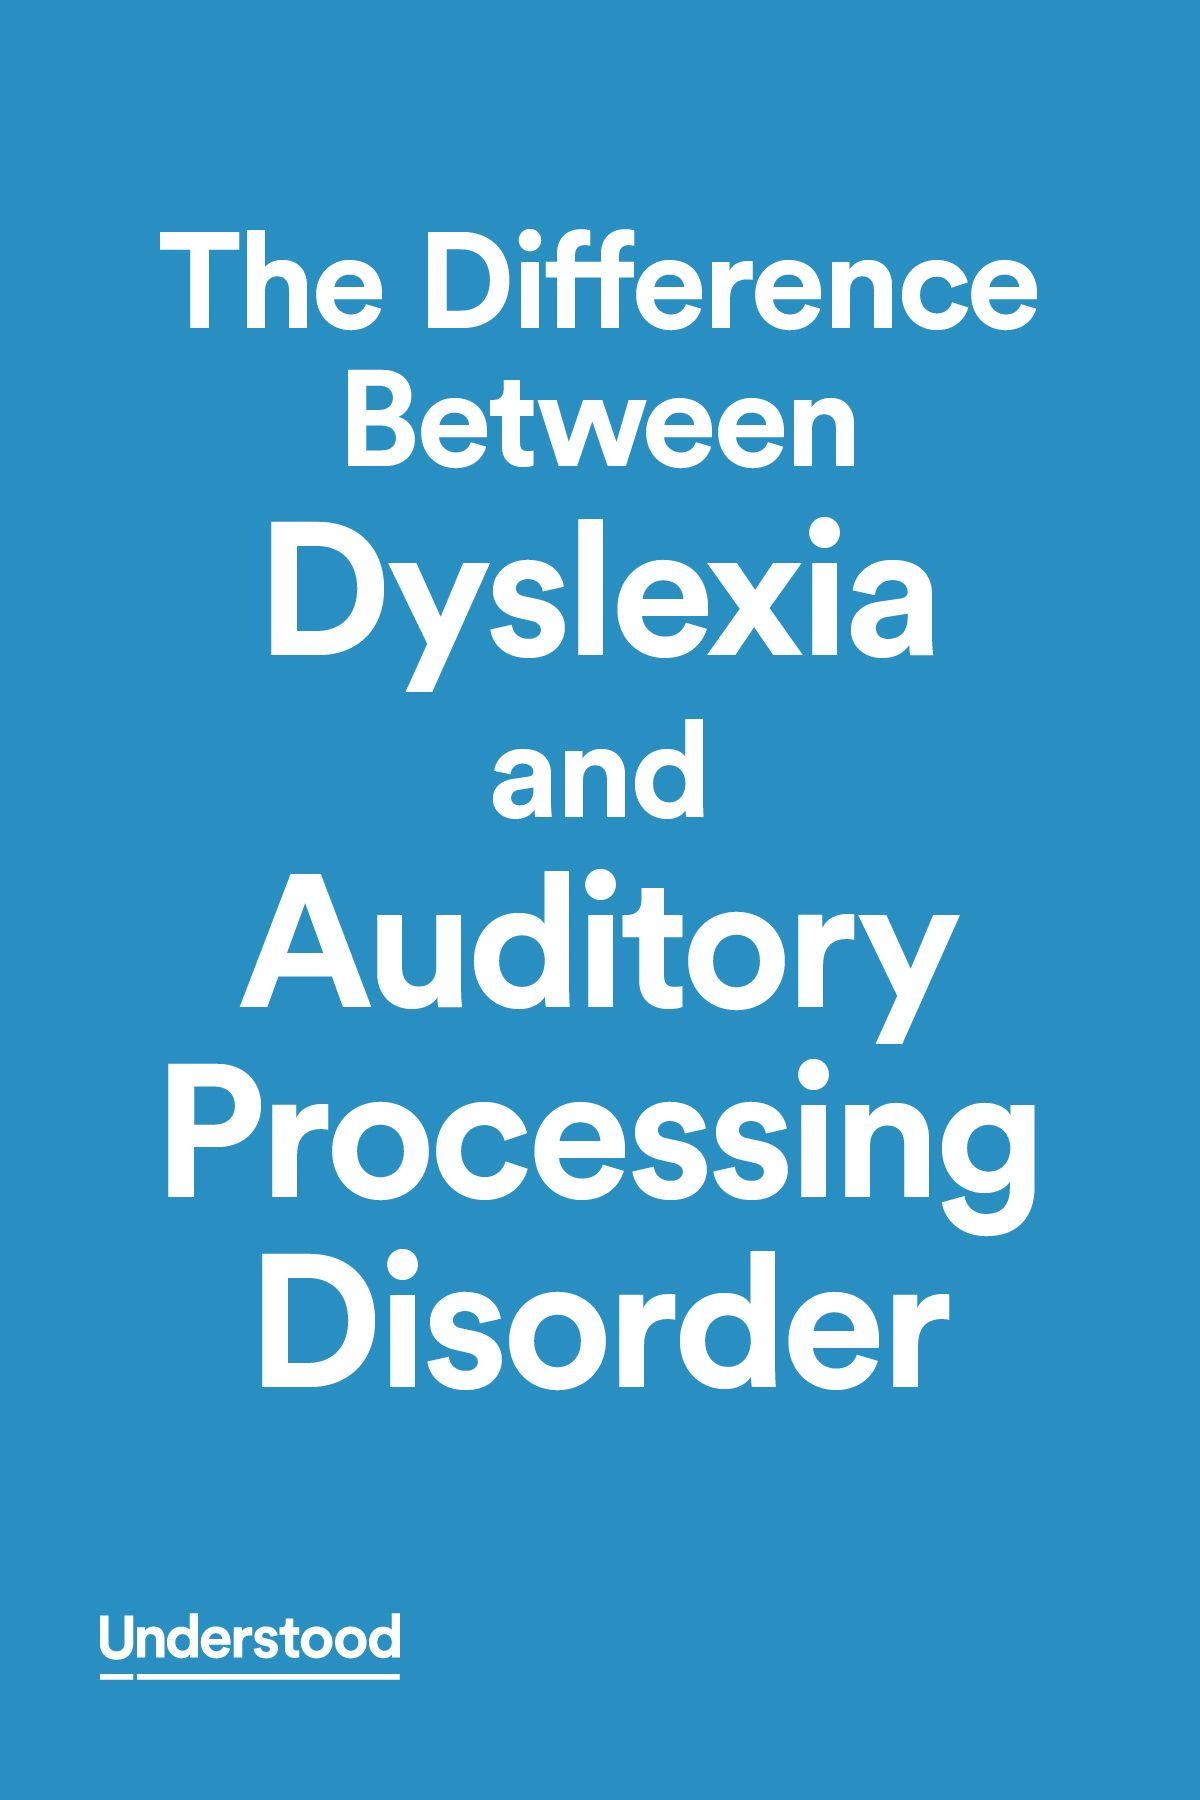 The Difference Between Dyslexia And Auditory Processing Disorder